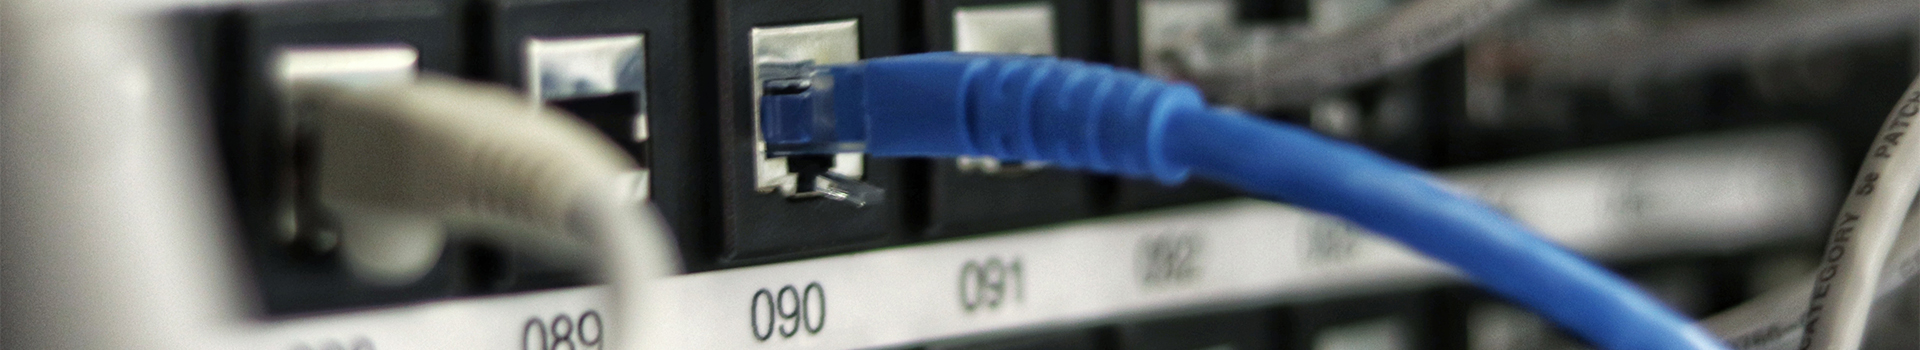 Our Solutions - Wired Networking